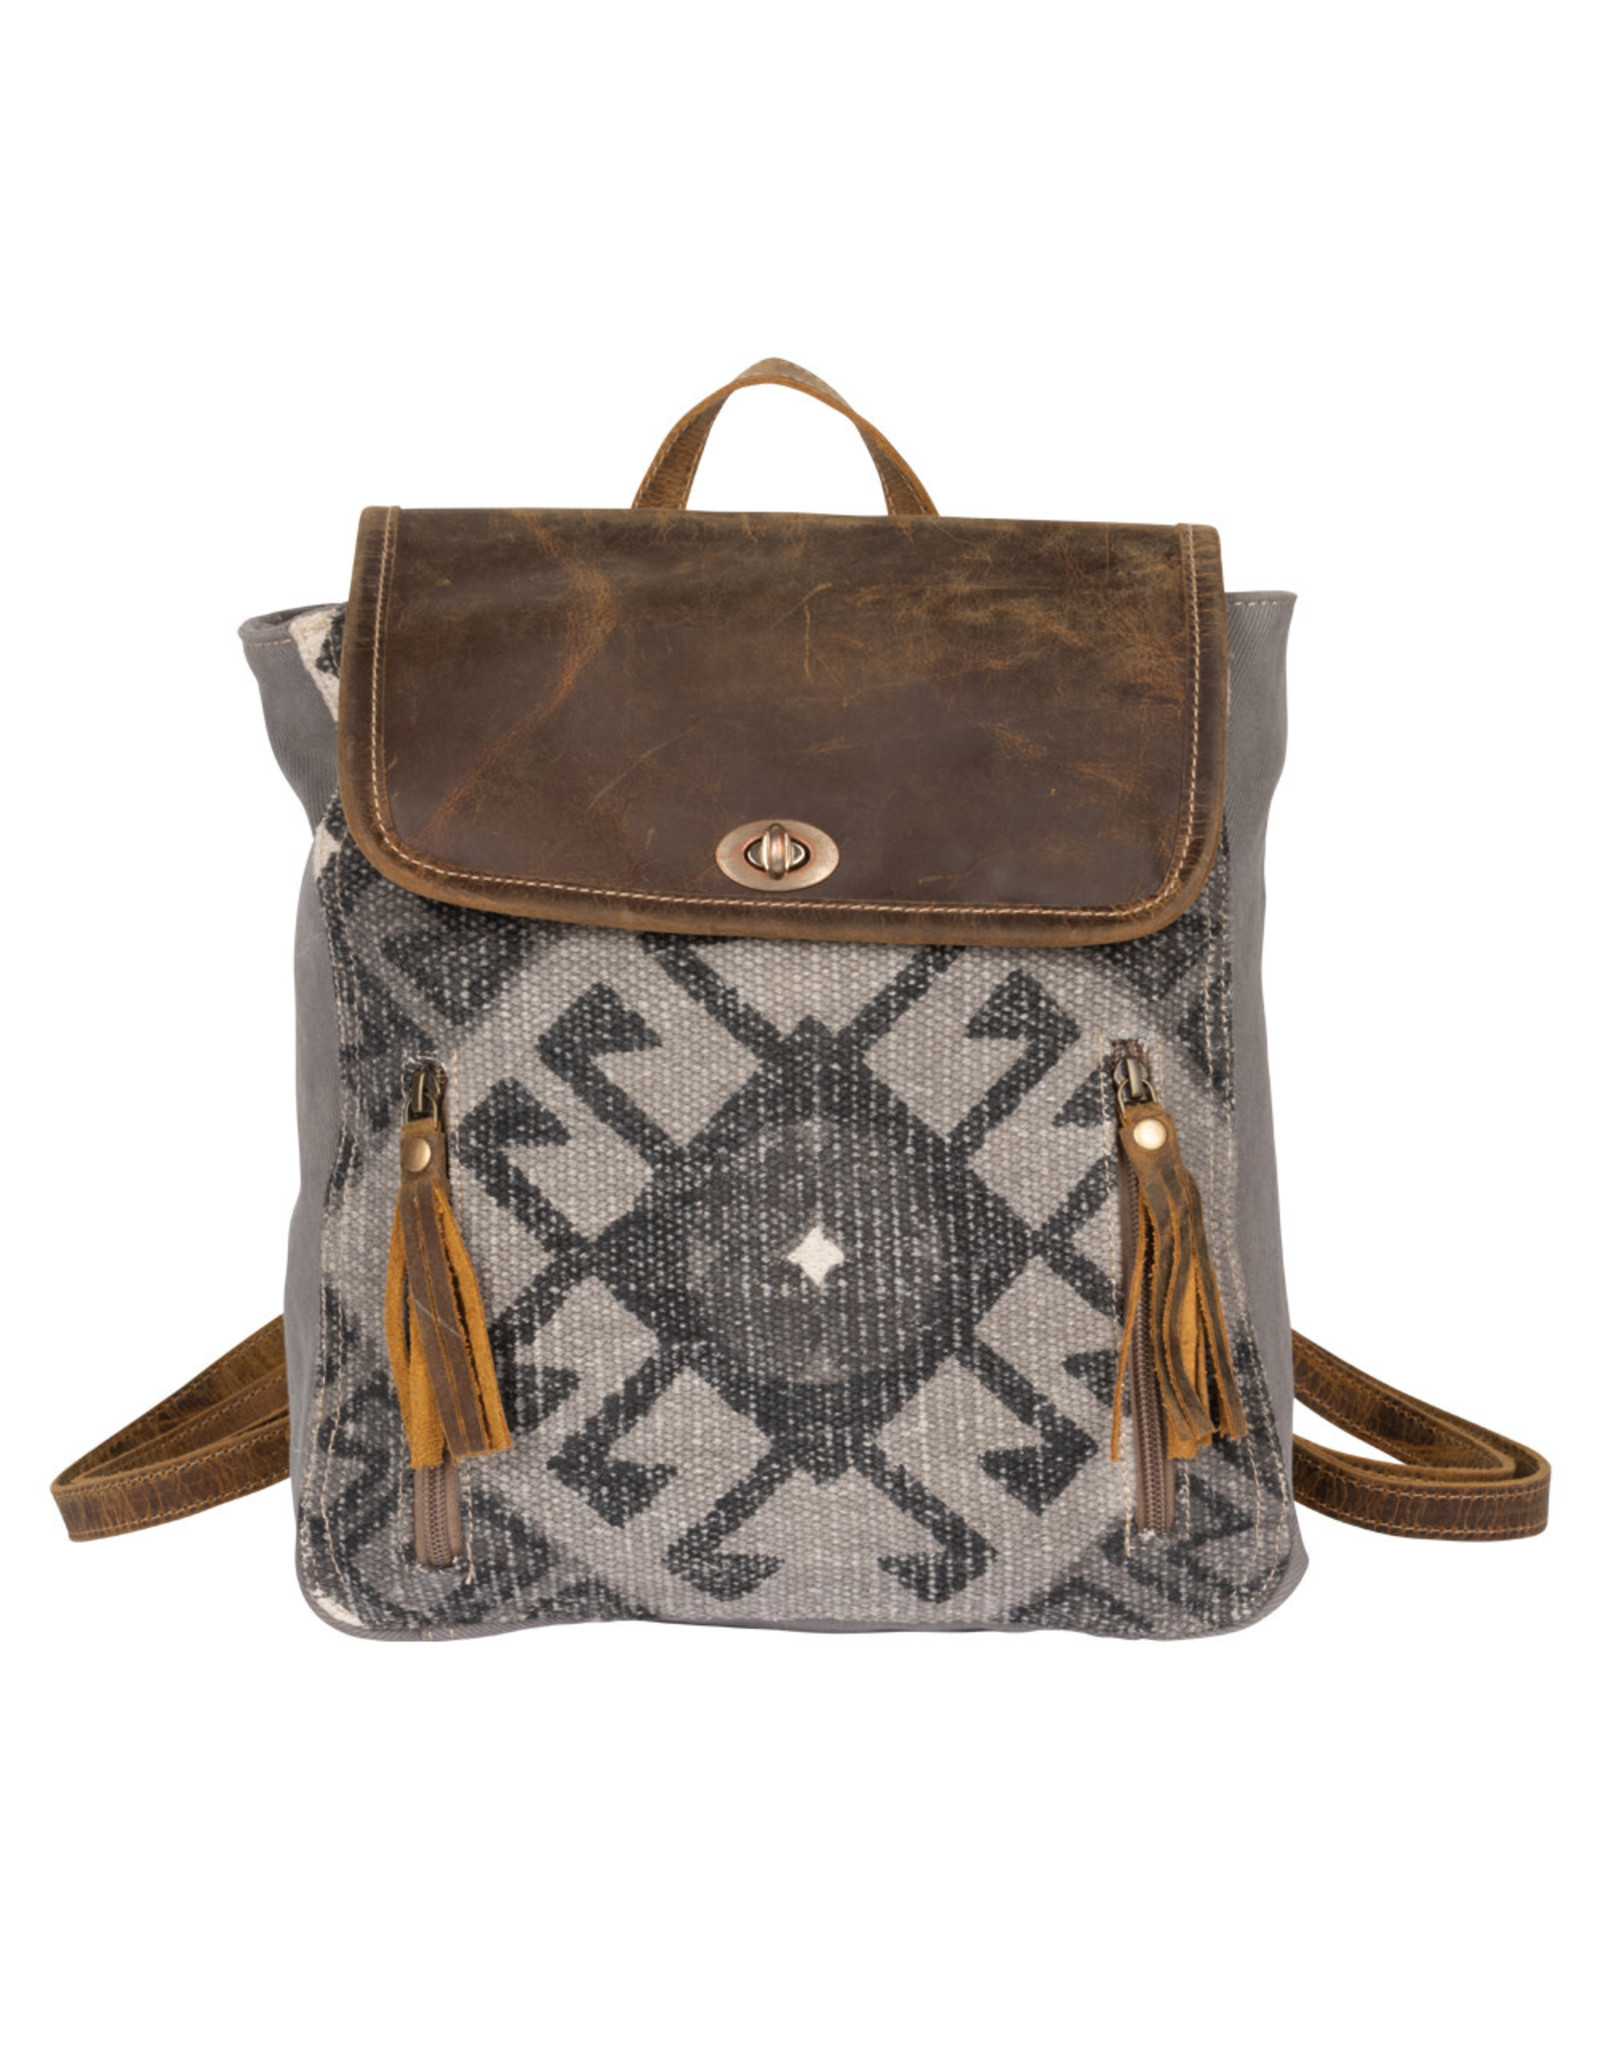 S 2224 Felicity Backpack Find great deals on ebay for women bags and wallet. myra bags s 2224 felicity backpack